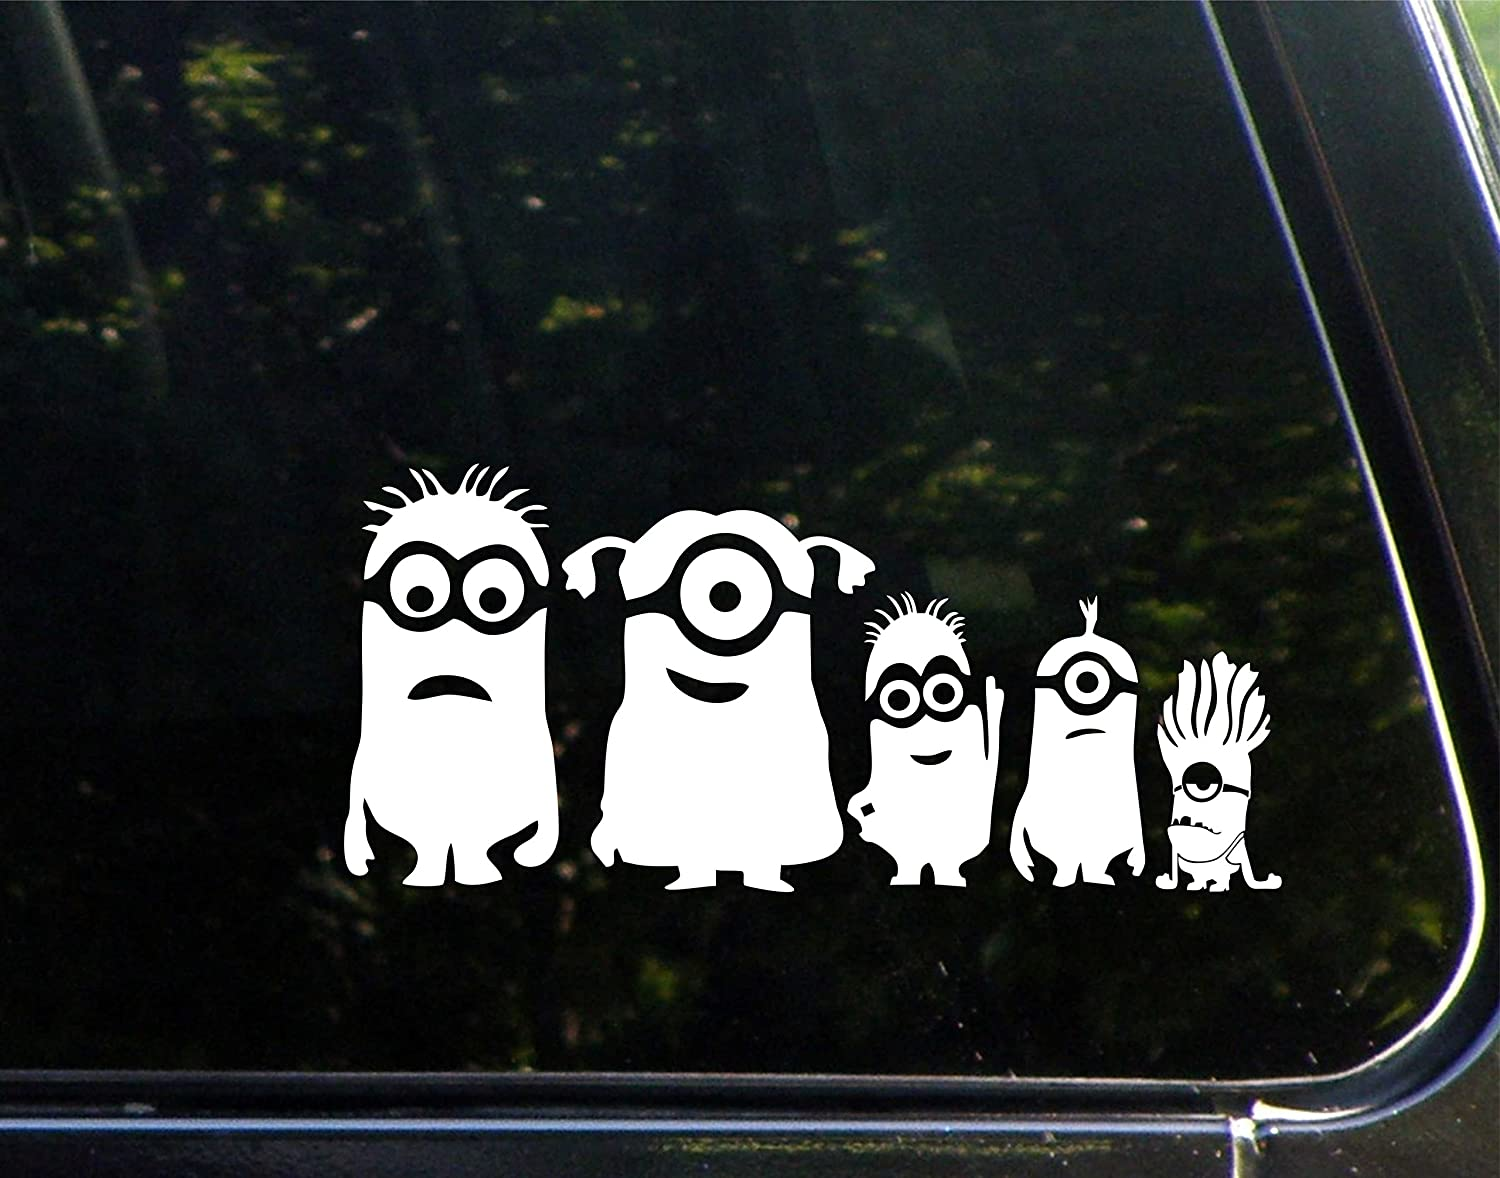 Amazoncom Minion Family  X  Vinyl Die Cut Decal Bumper - Family car sticker decals